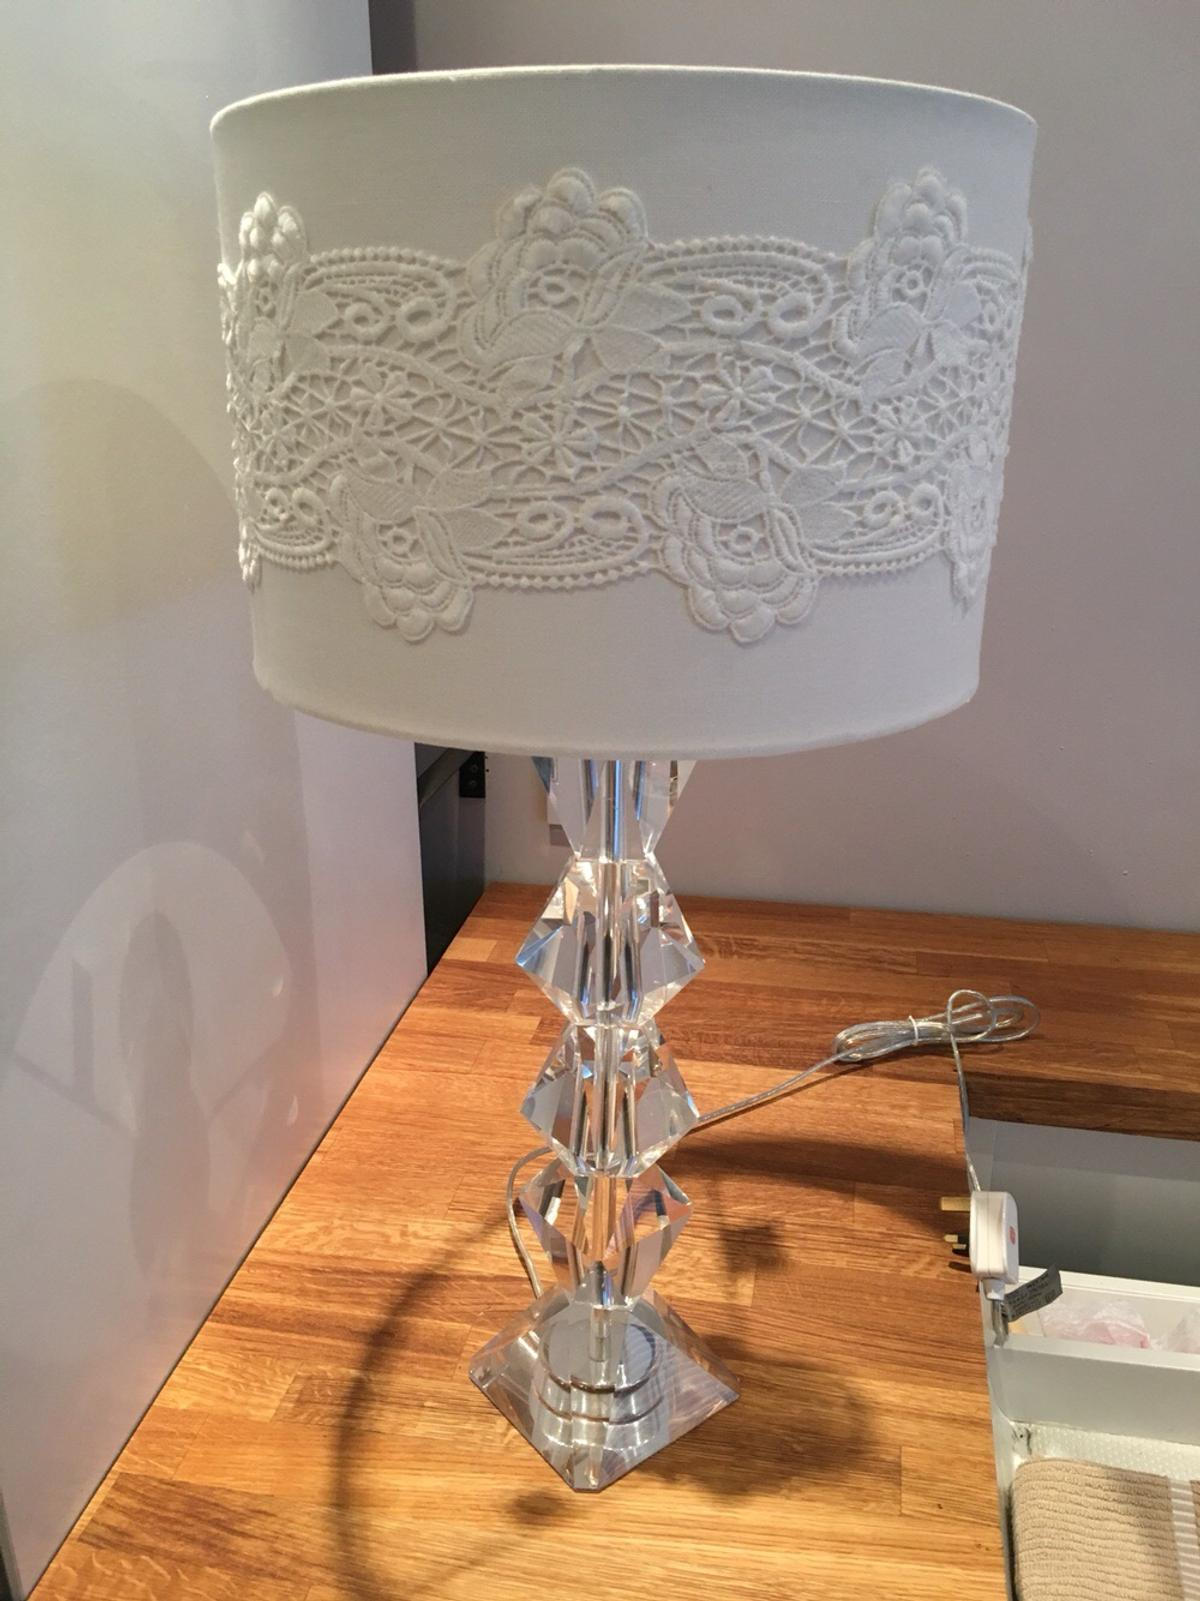 Crystal Bhs Table Lamp And Lace Lampshade In Cv6 Coventry For 40 00 For Sale Shpock